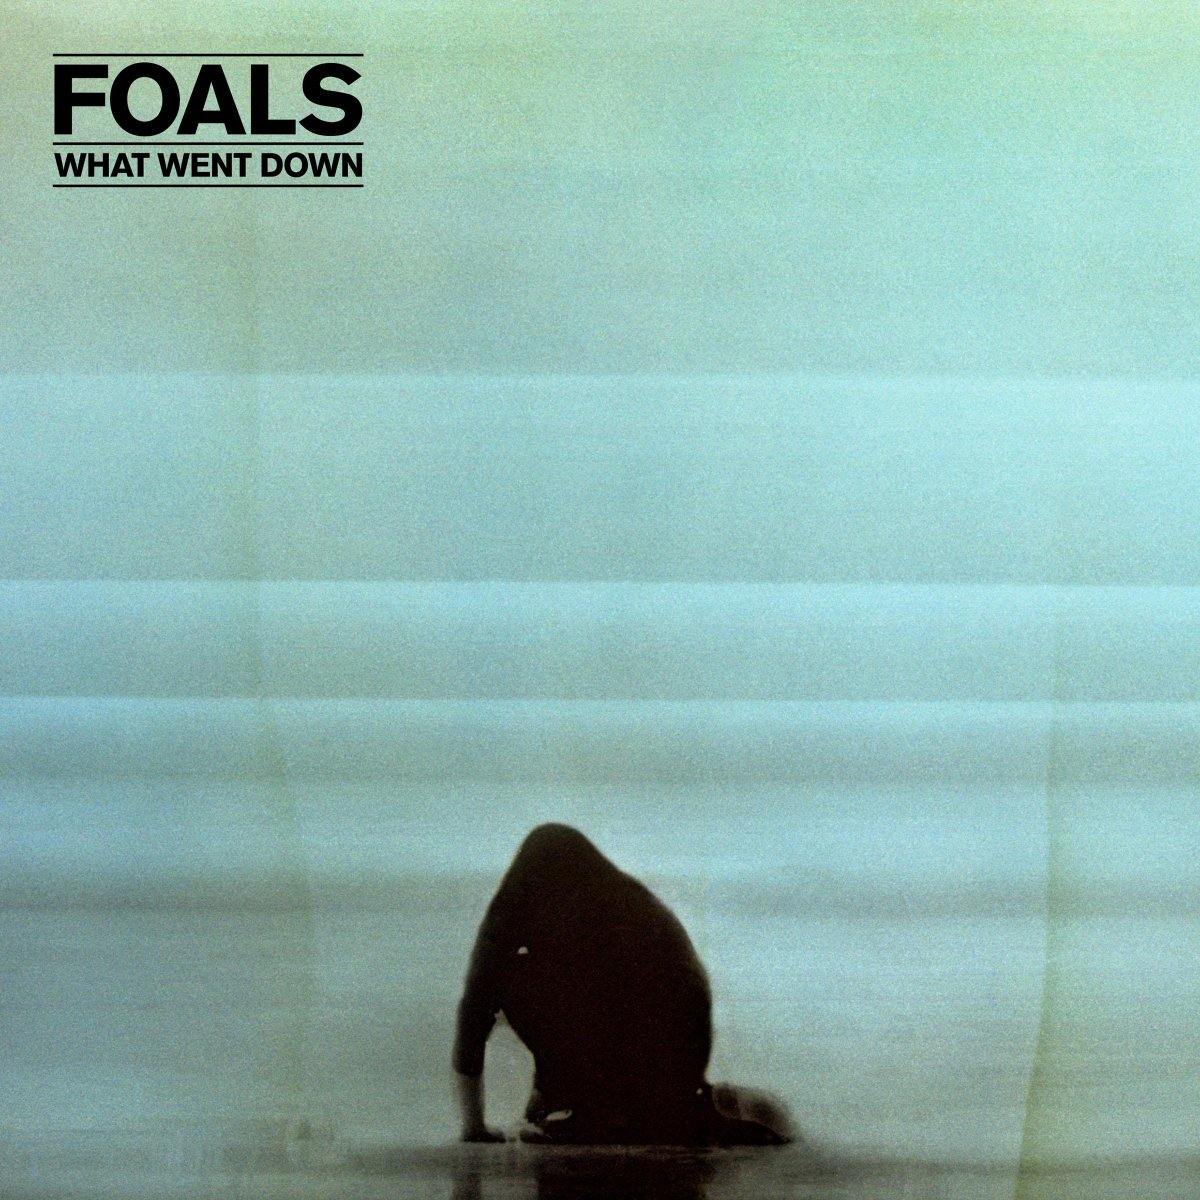 FOALS | What Went Down | 28.08.15 | http://t.co/V7qXTmS0AN http://t.co/iCfwSVxnfg